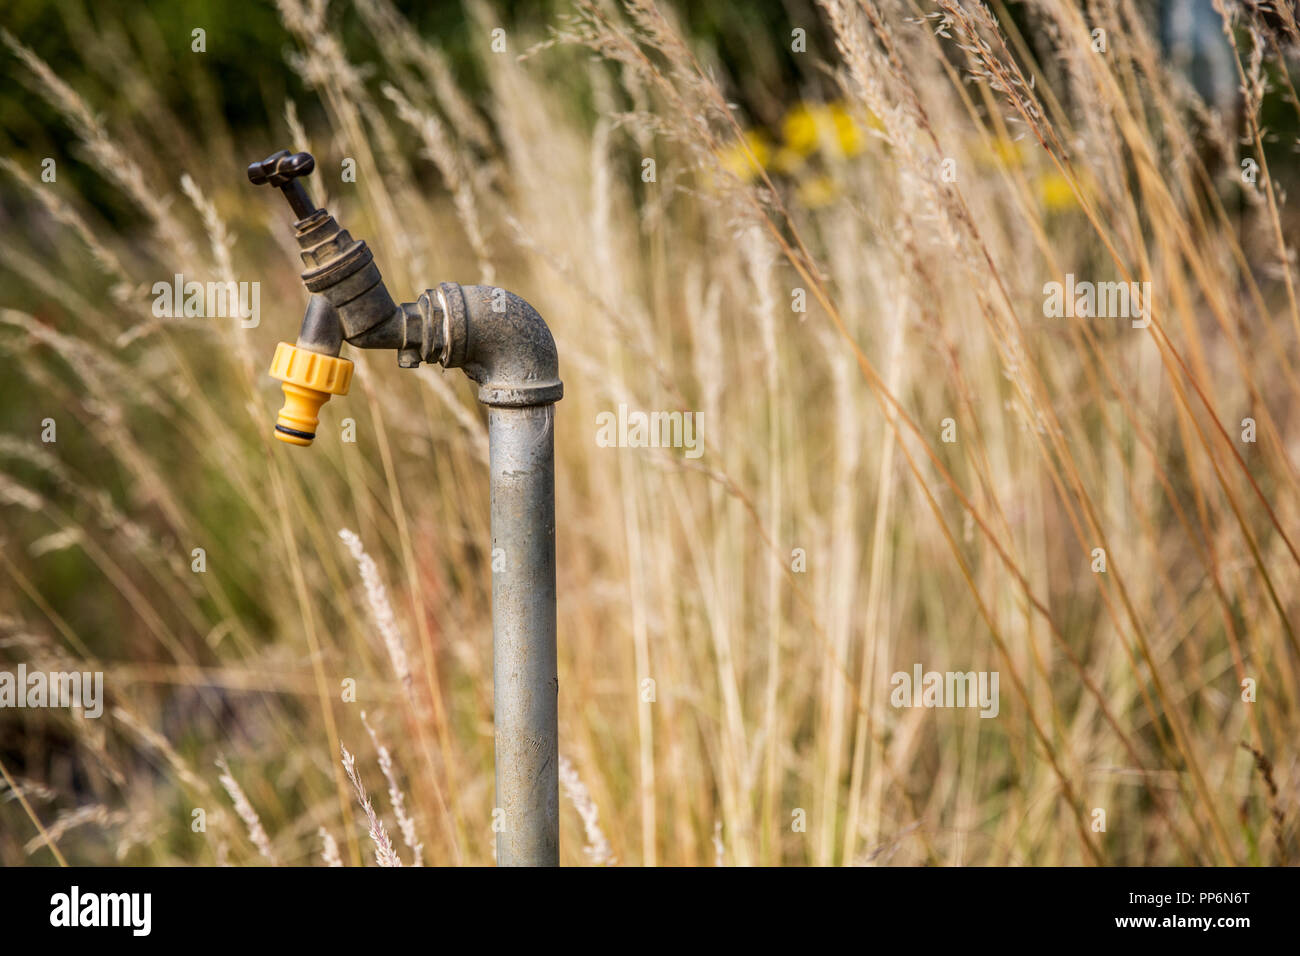 Close up of water tap with yellow plastic hose attachment in an allotment. - Stock Image